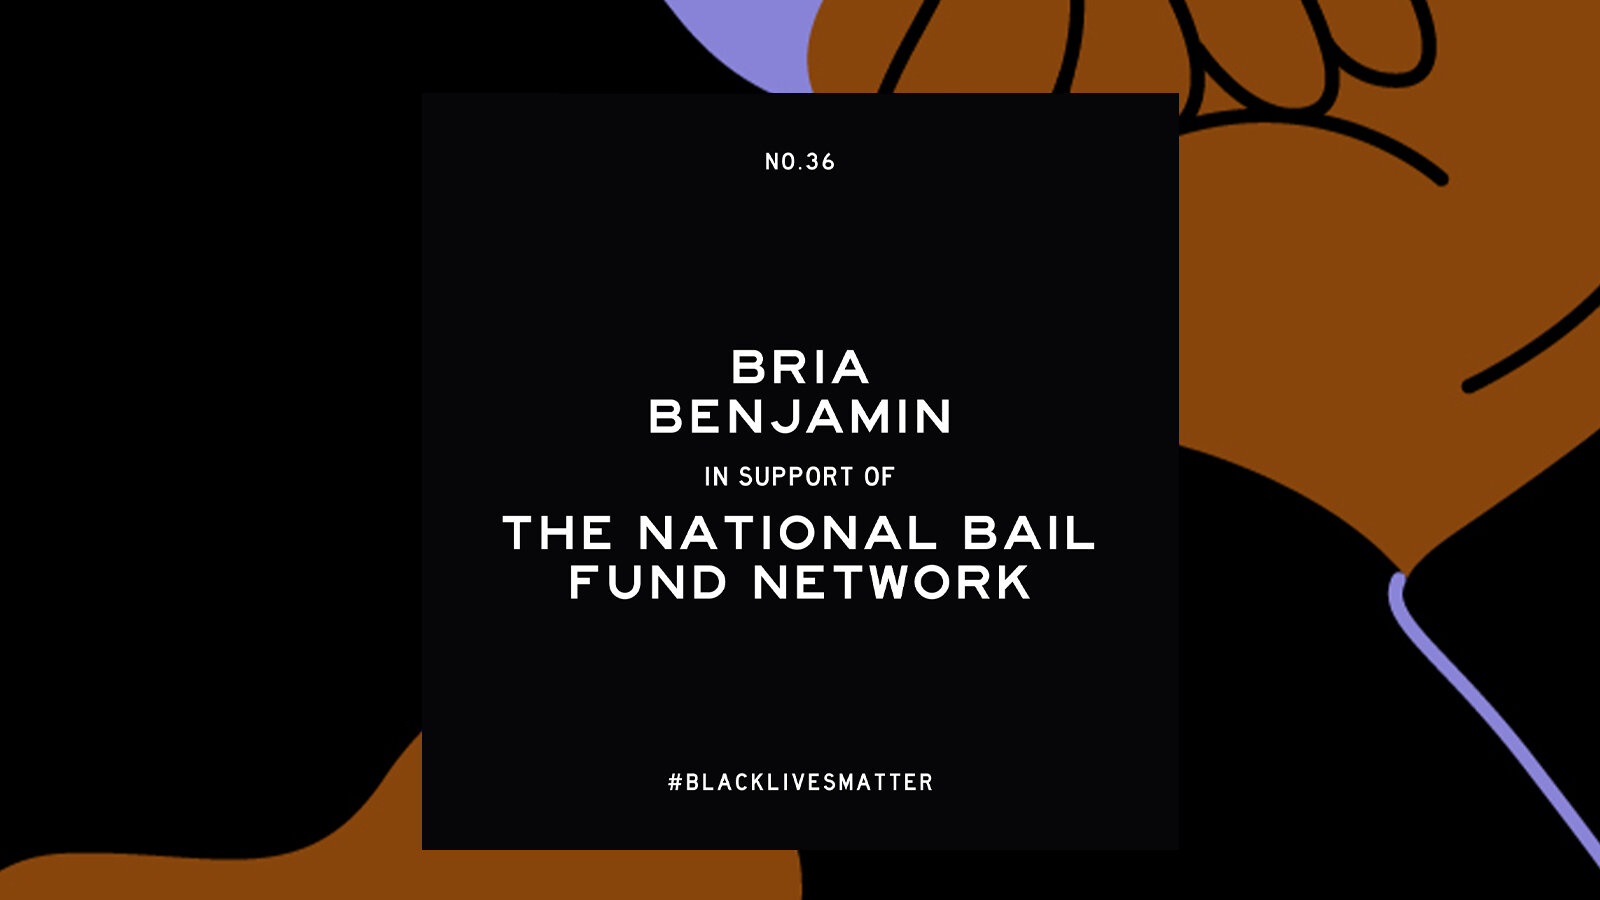 an image with the text: Bria Benjamin in support of The National Bail Fund Network #BlackLivesMatter